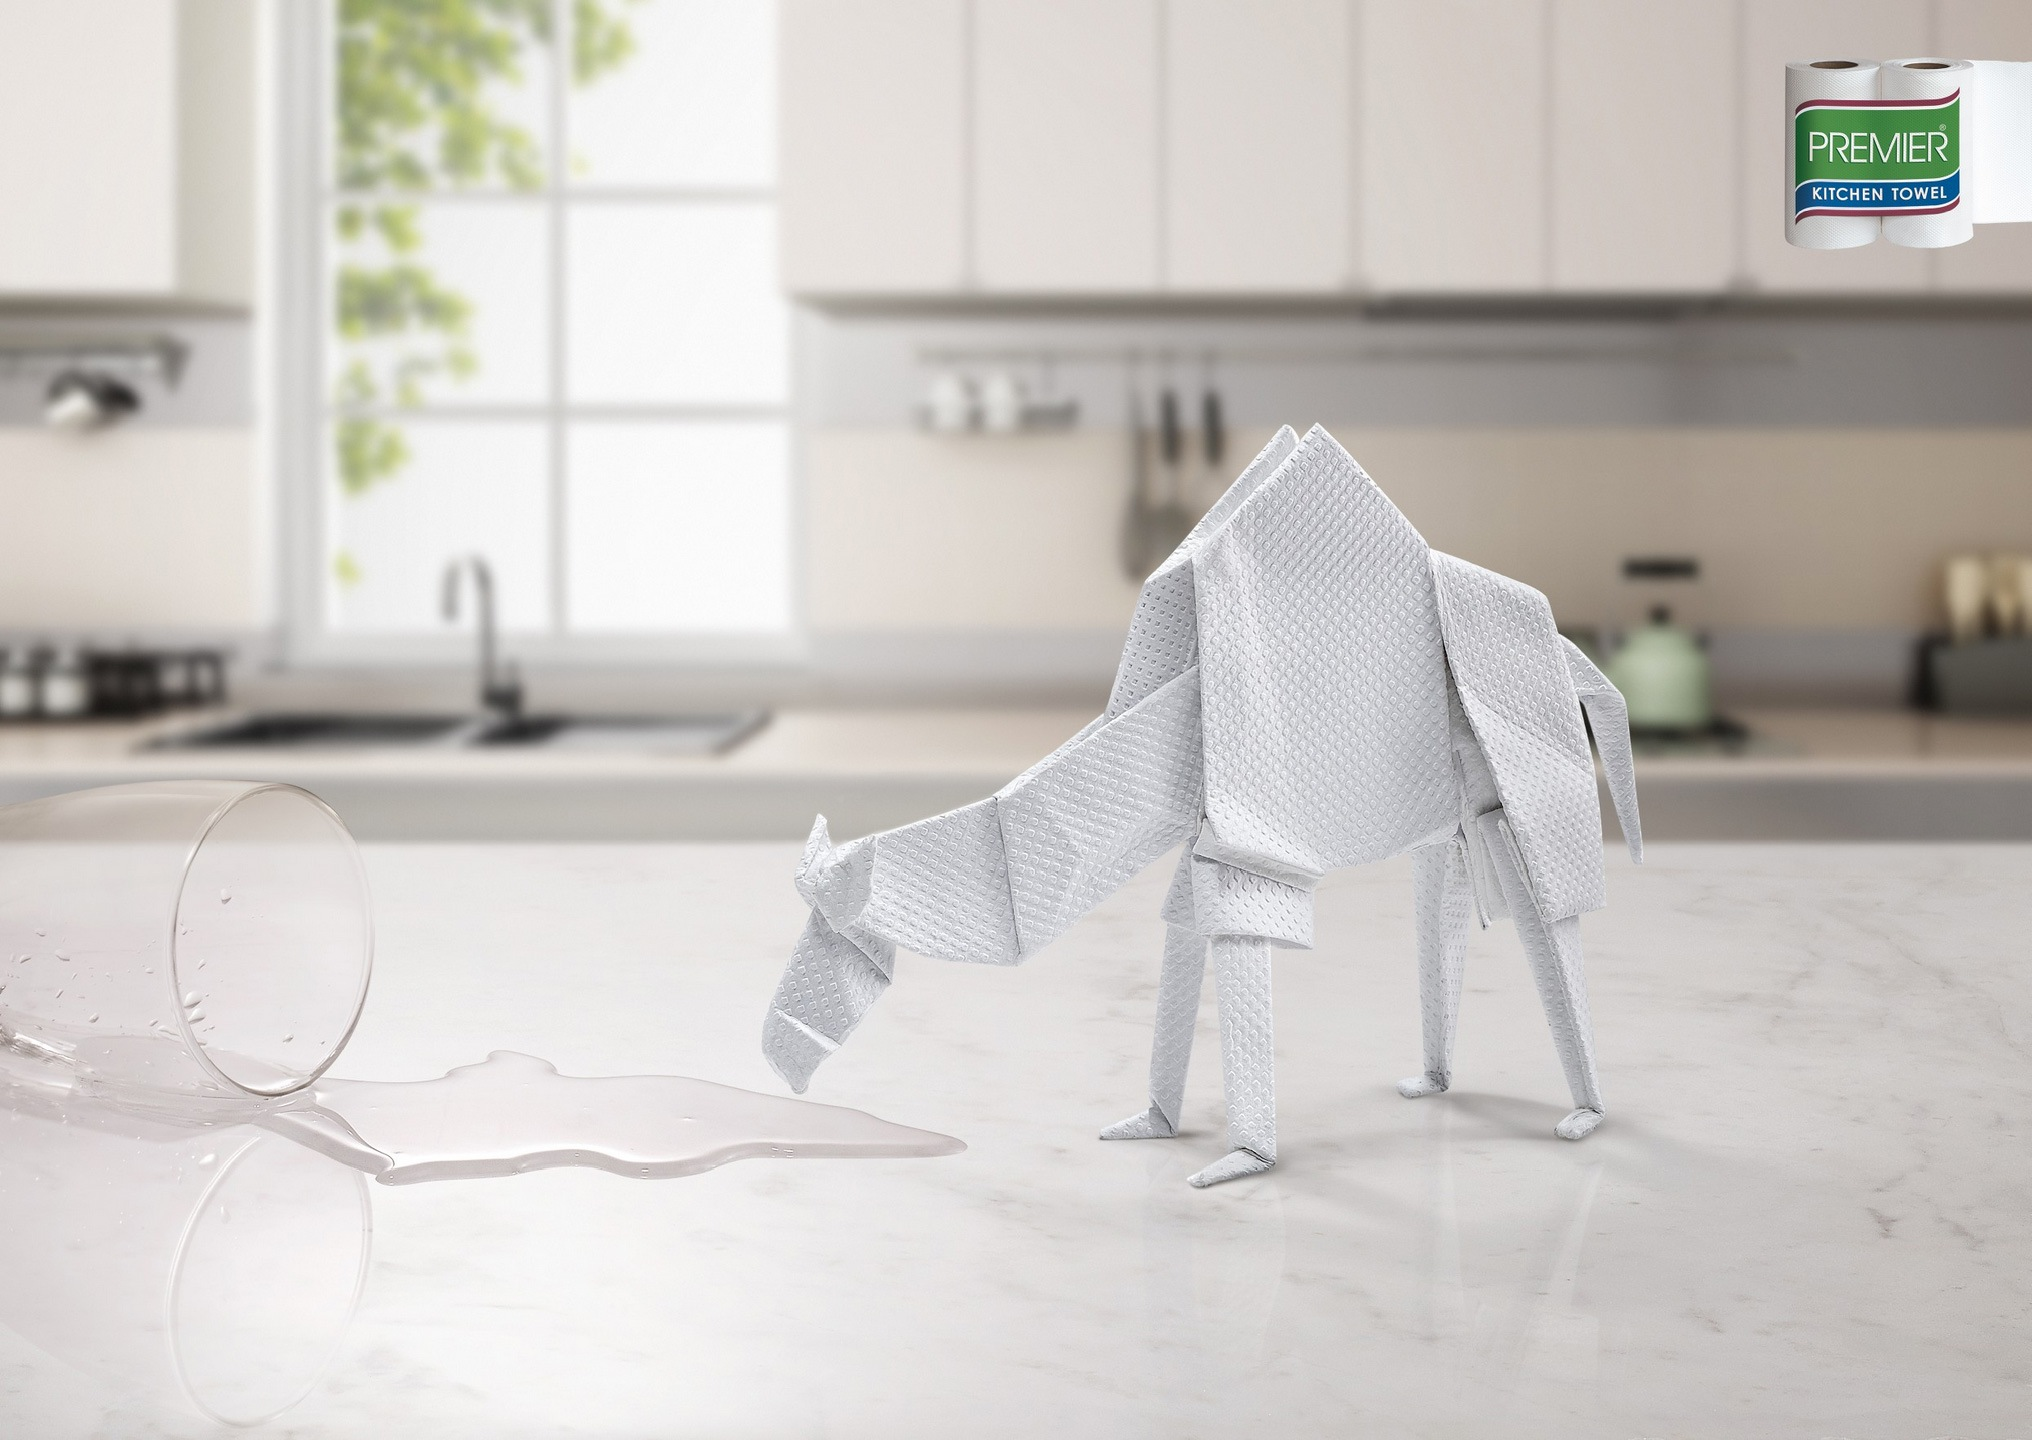 Premier Kitchen Towel Outdoor Advert By McCann: Camel | Ads of the ...